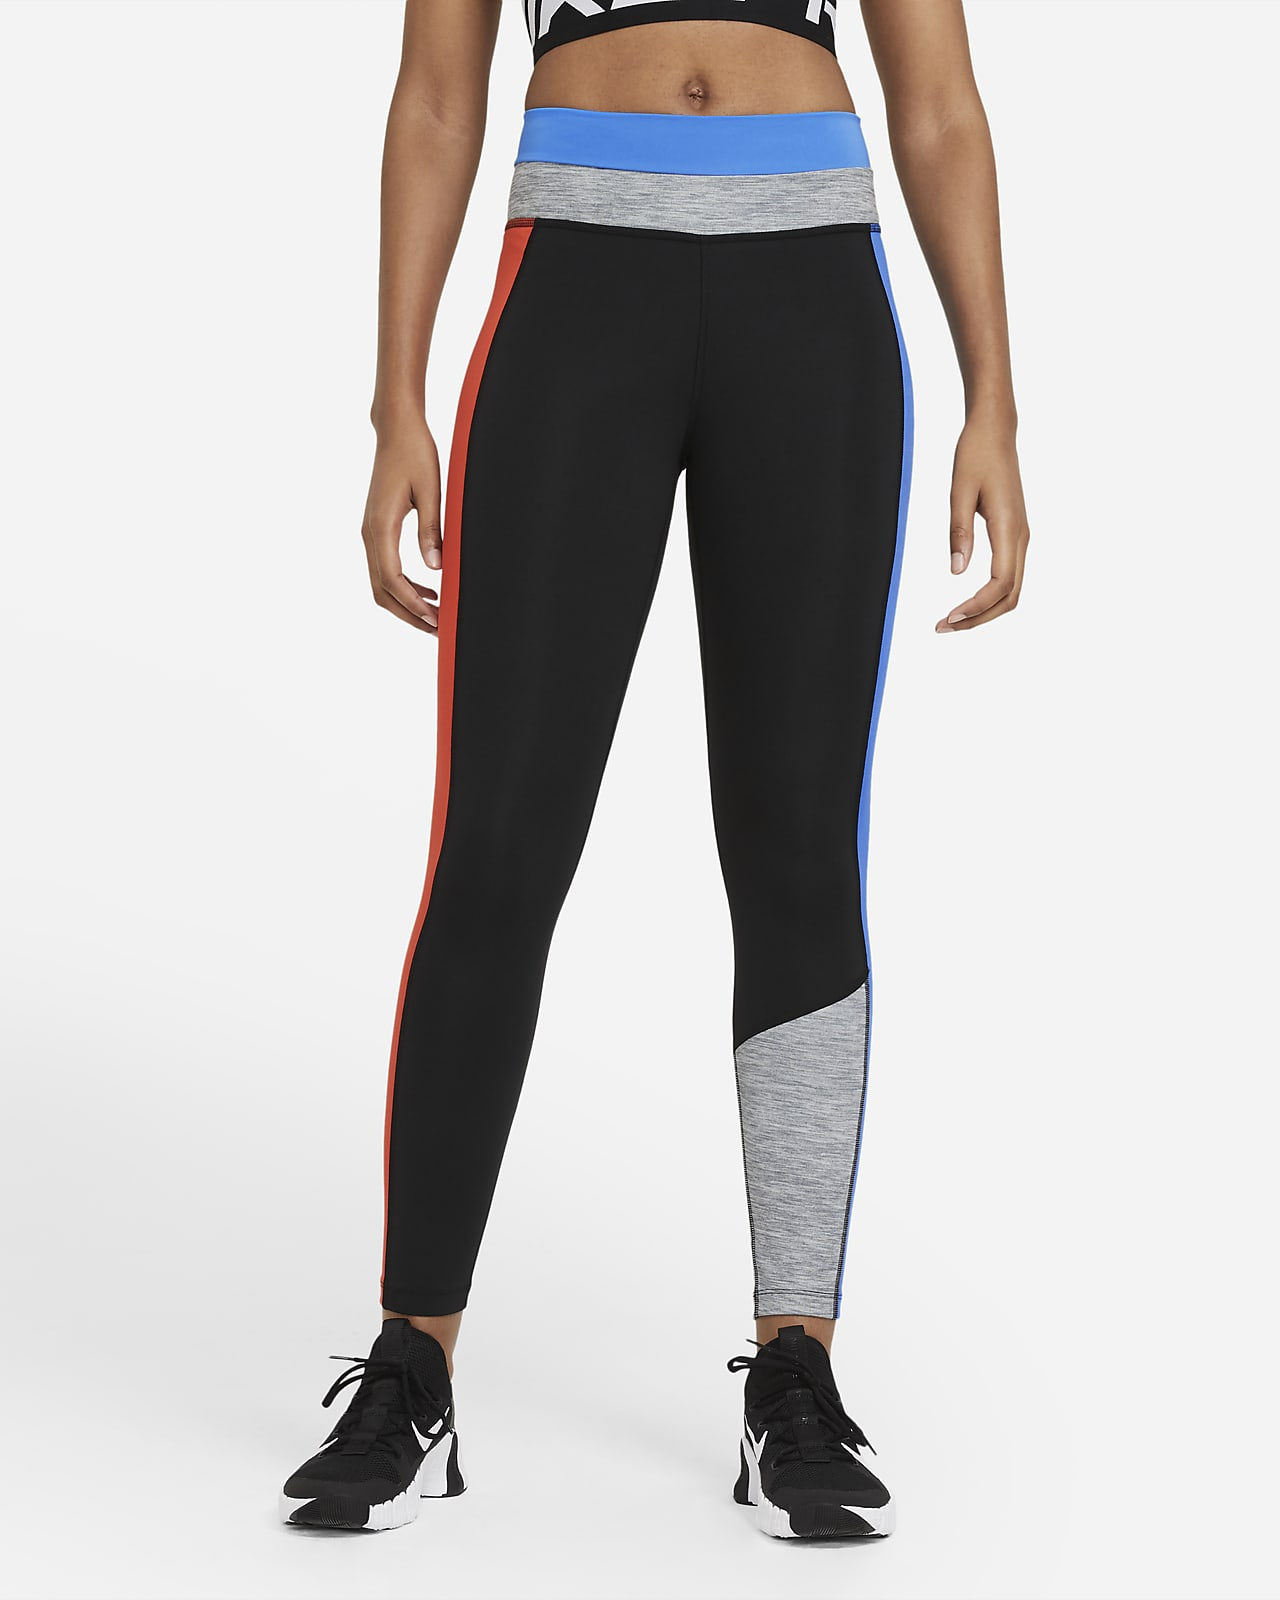 Nike One Women's Color-Block 7/8 Leggings